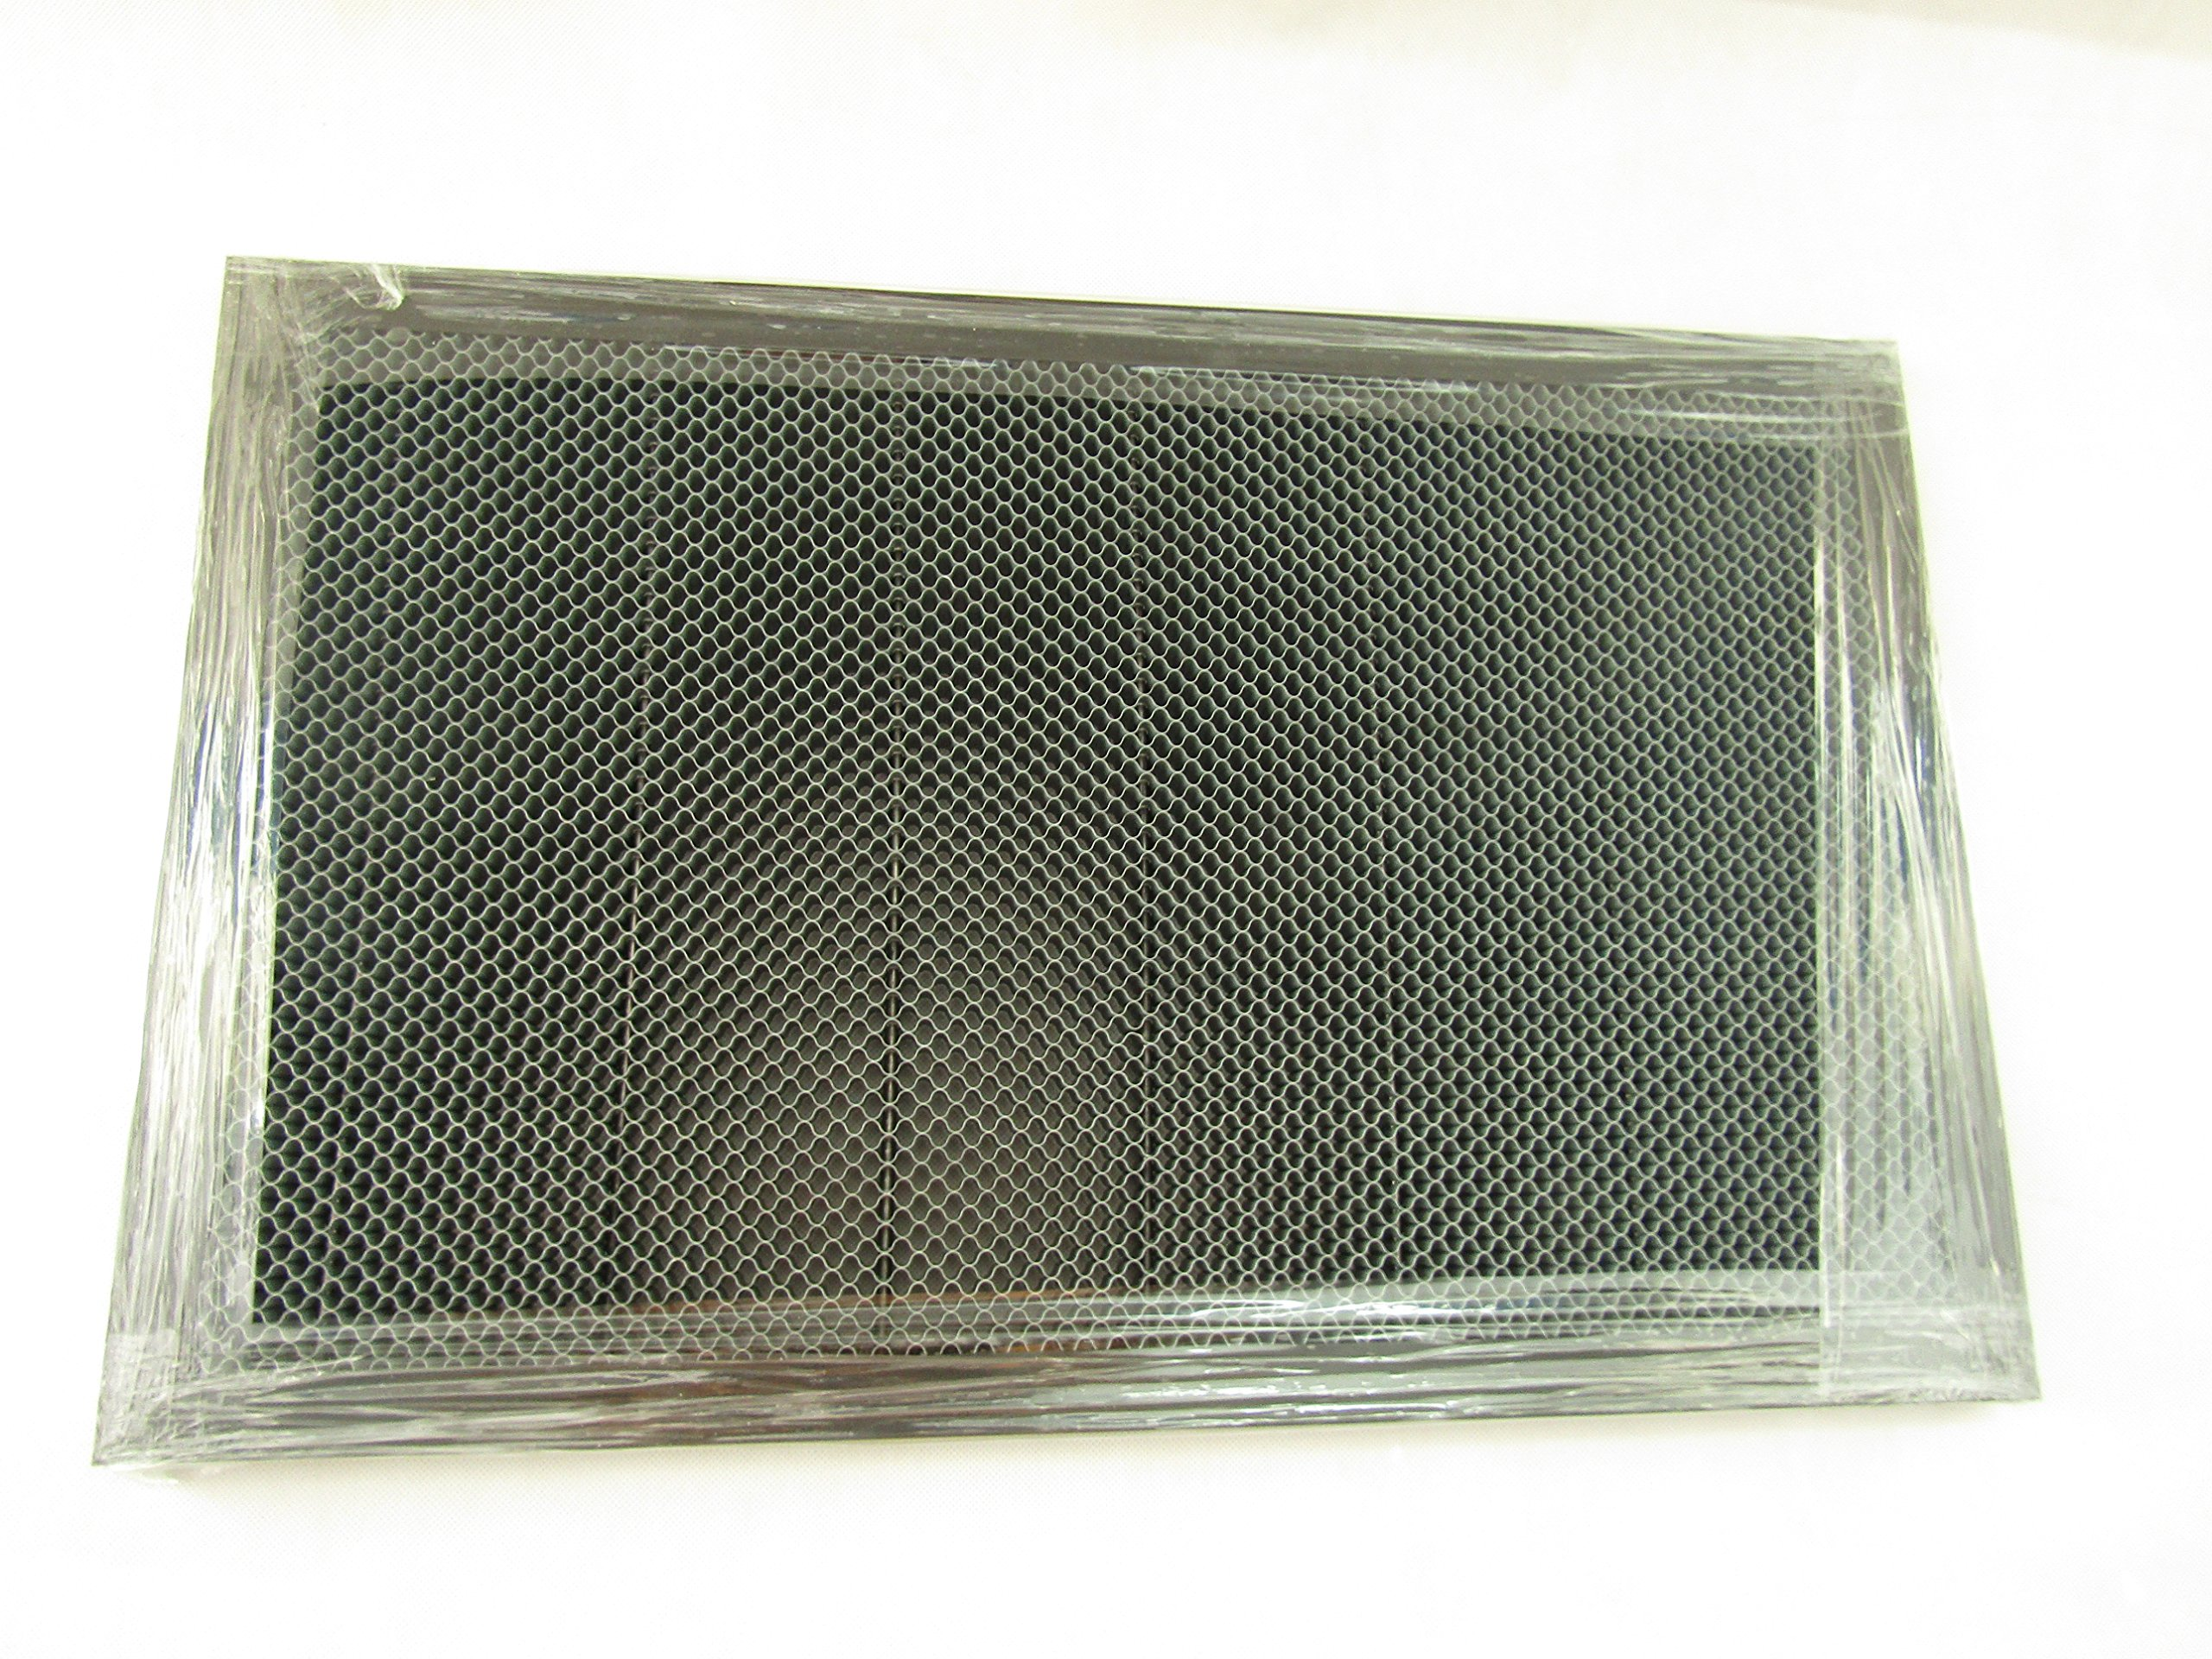 Honeycomb Work Bed Table CO2 50W 60W for Tube Laser Engraving Cutting Machine 550x350mm 7-10mm table hole by MXBAOHENG (Image #2)